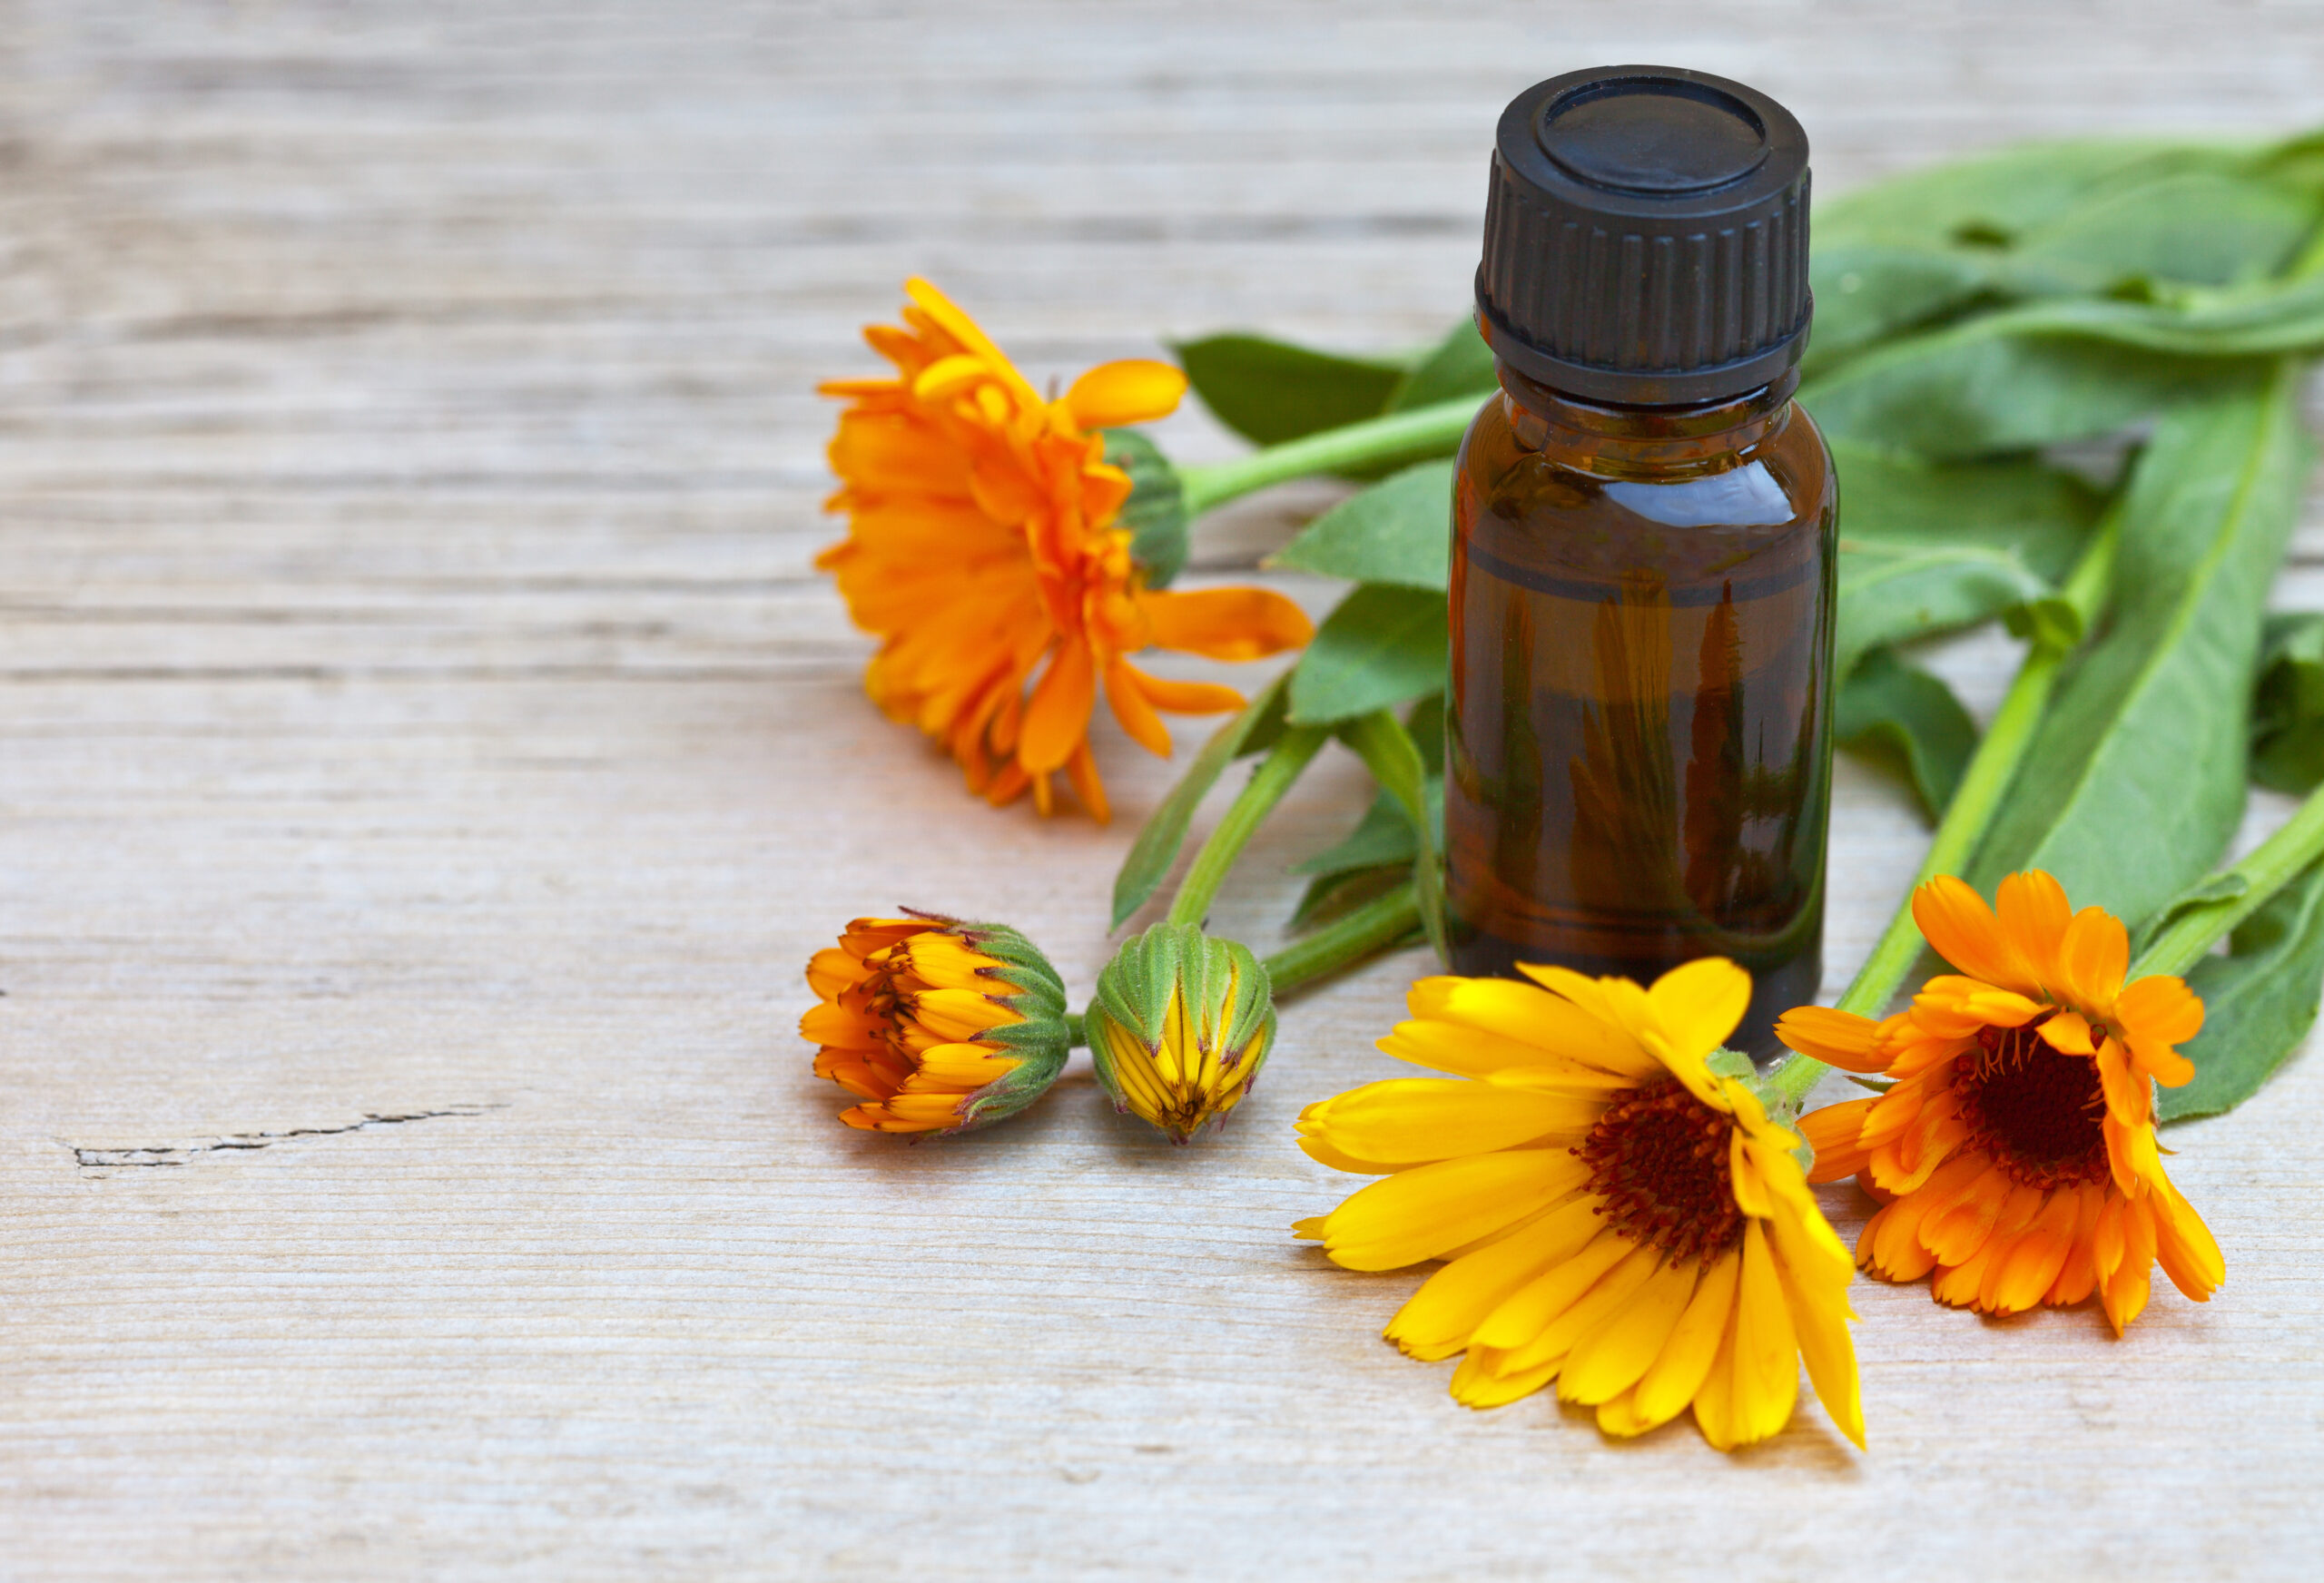 Healing bright calendula flowers and a vial with a medicinal tincture based on a marigold plant. Place for text. Close-up view